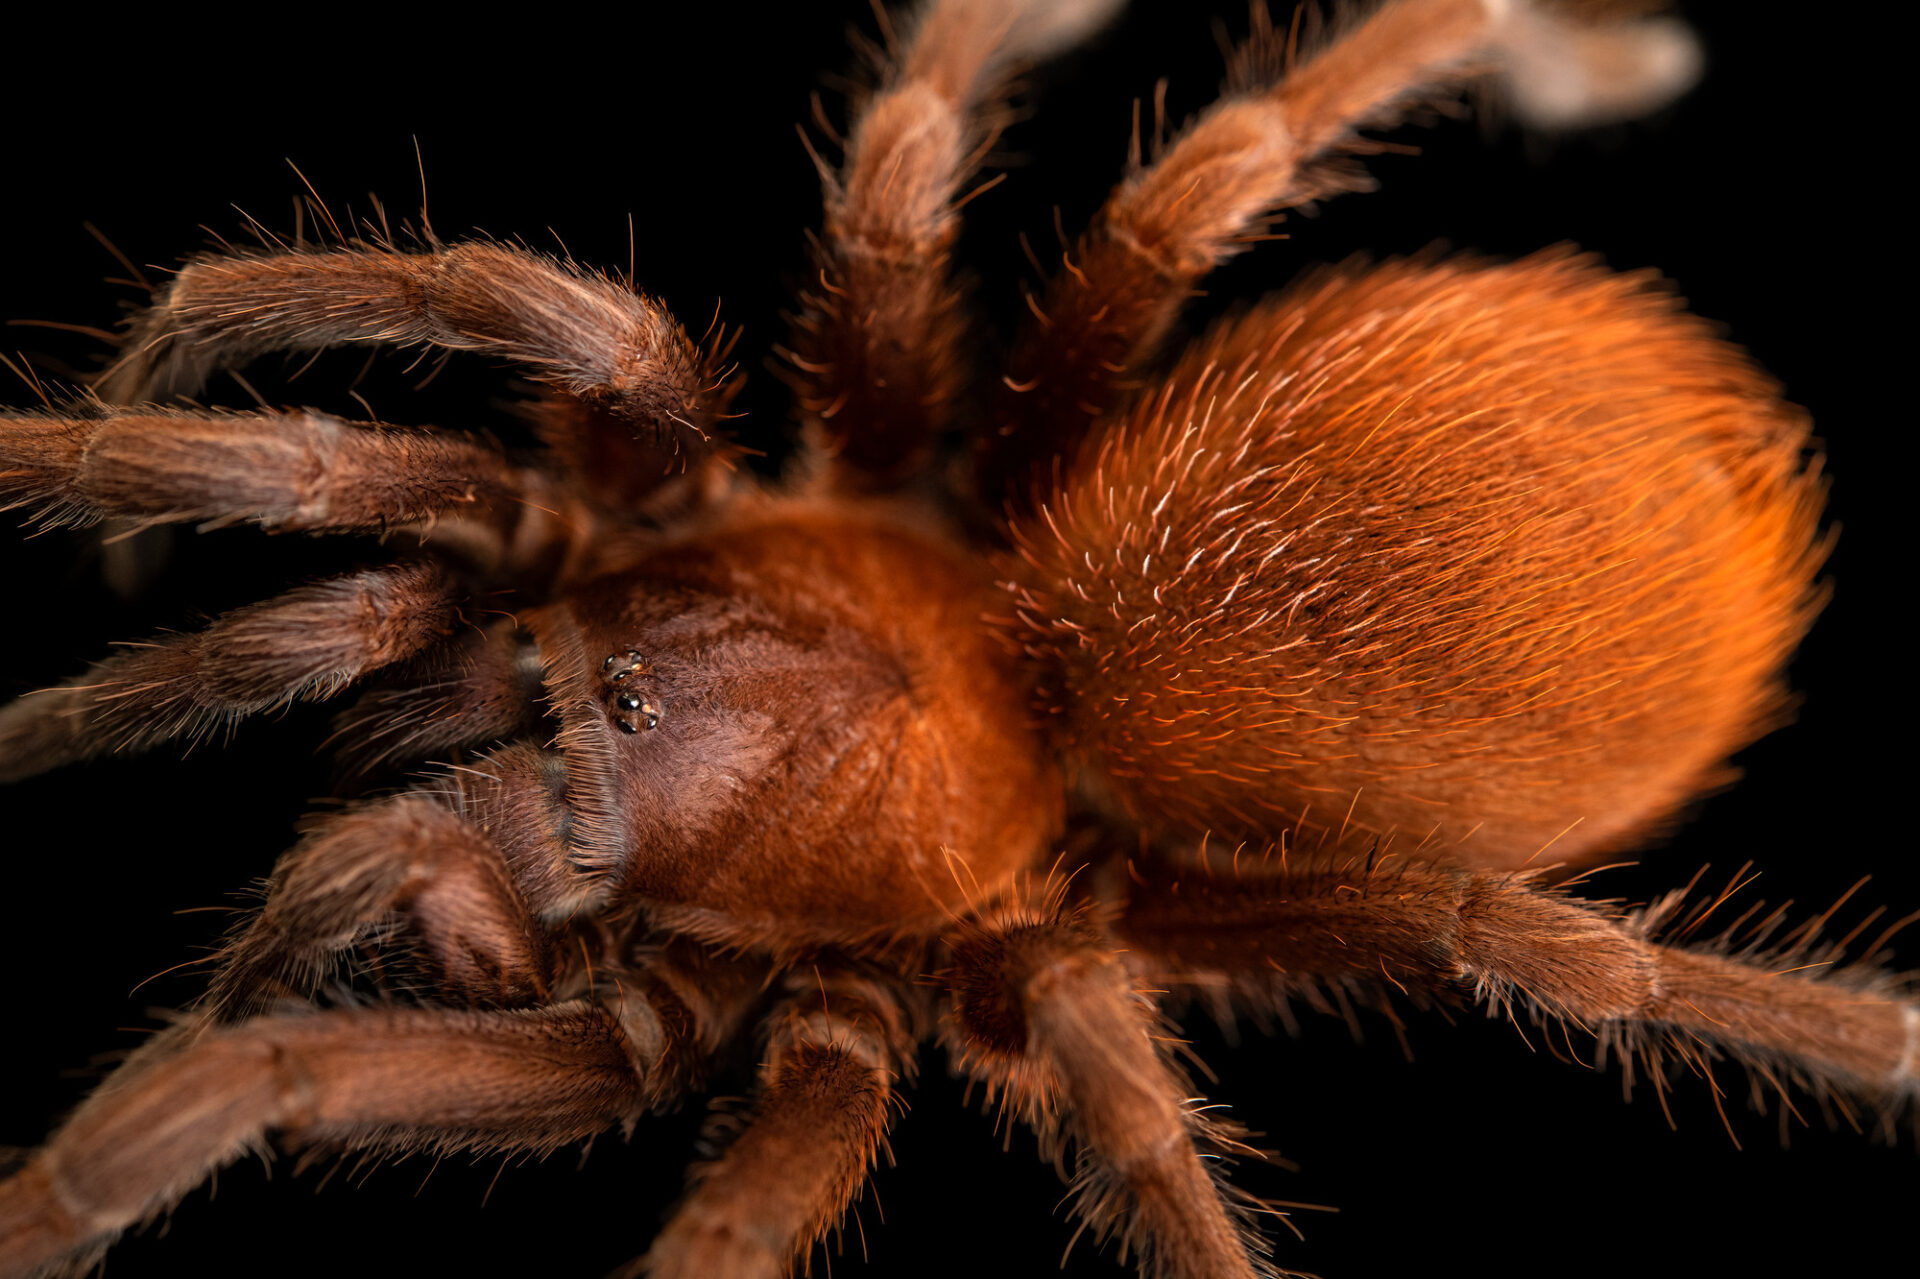 Photo: A tarantula (Citharacanthus cyaneus) from a private collection.